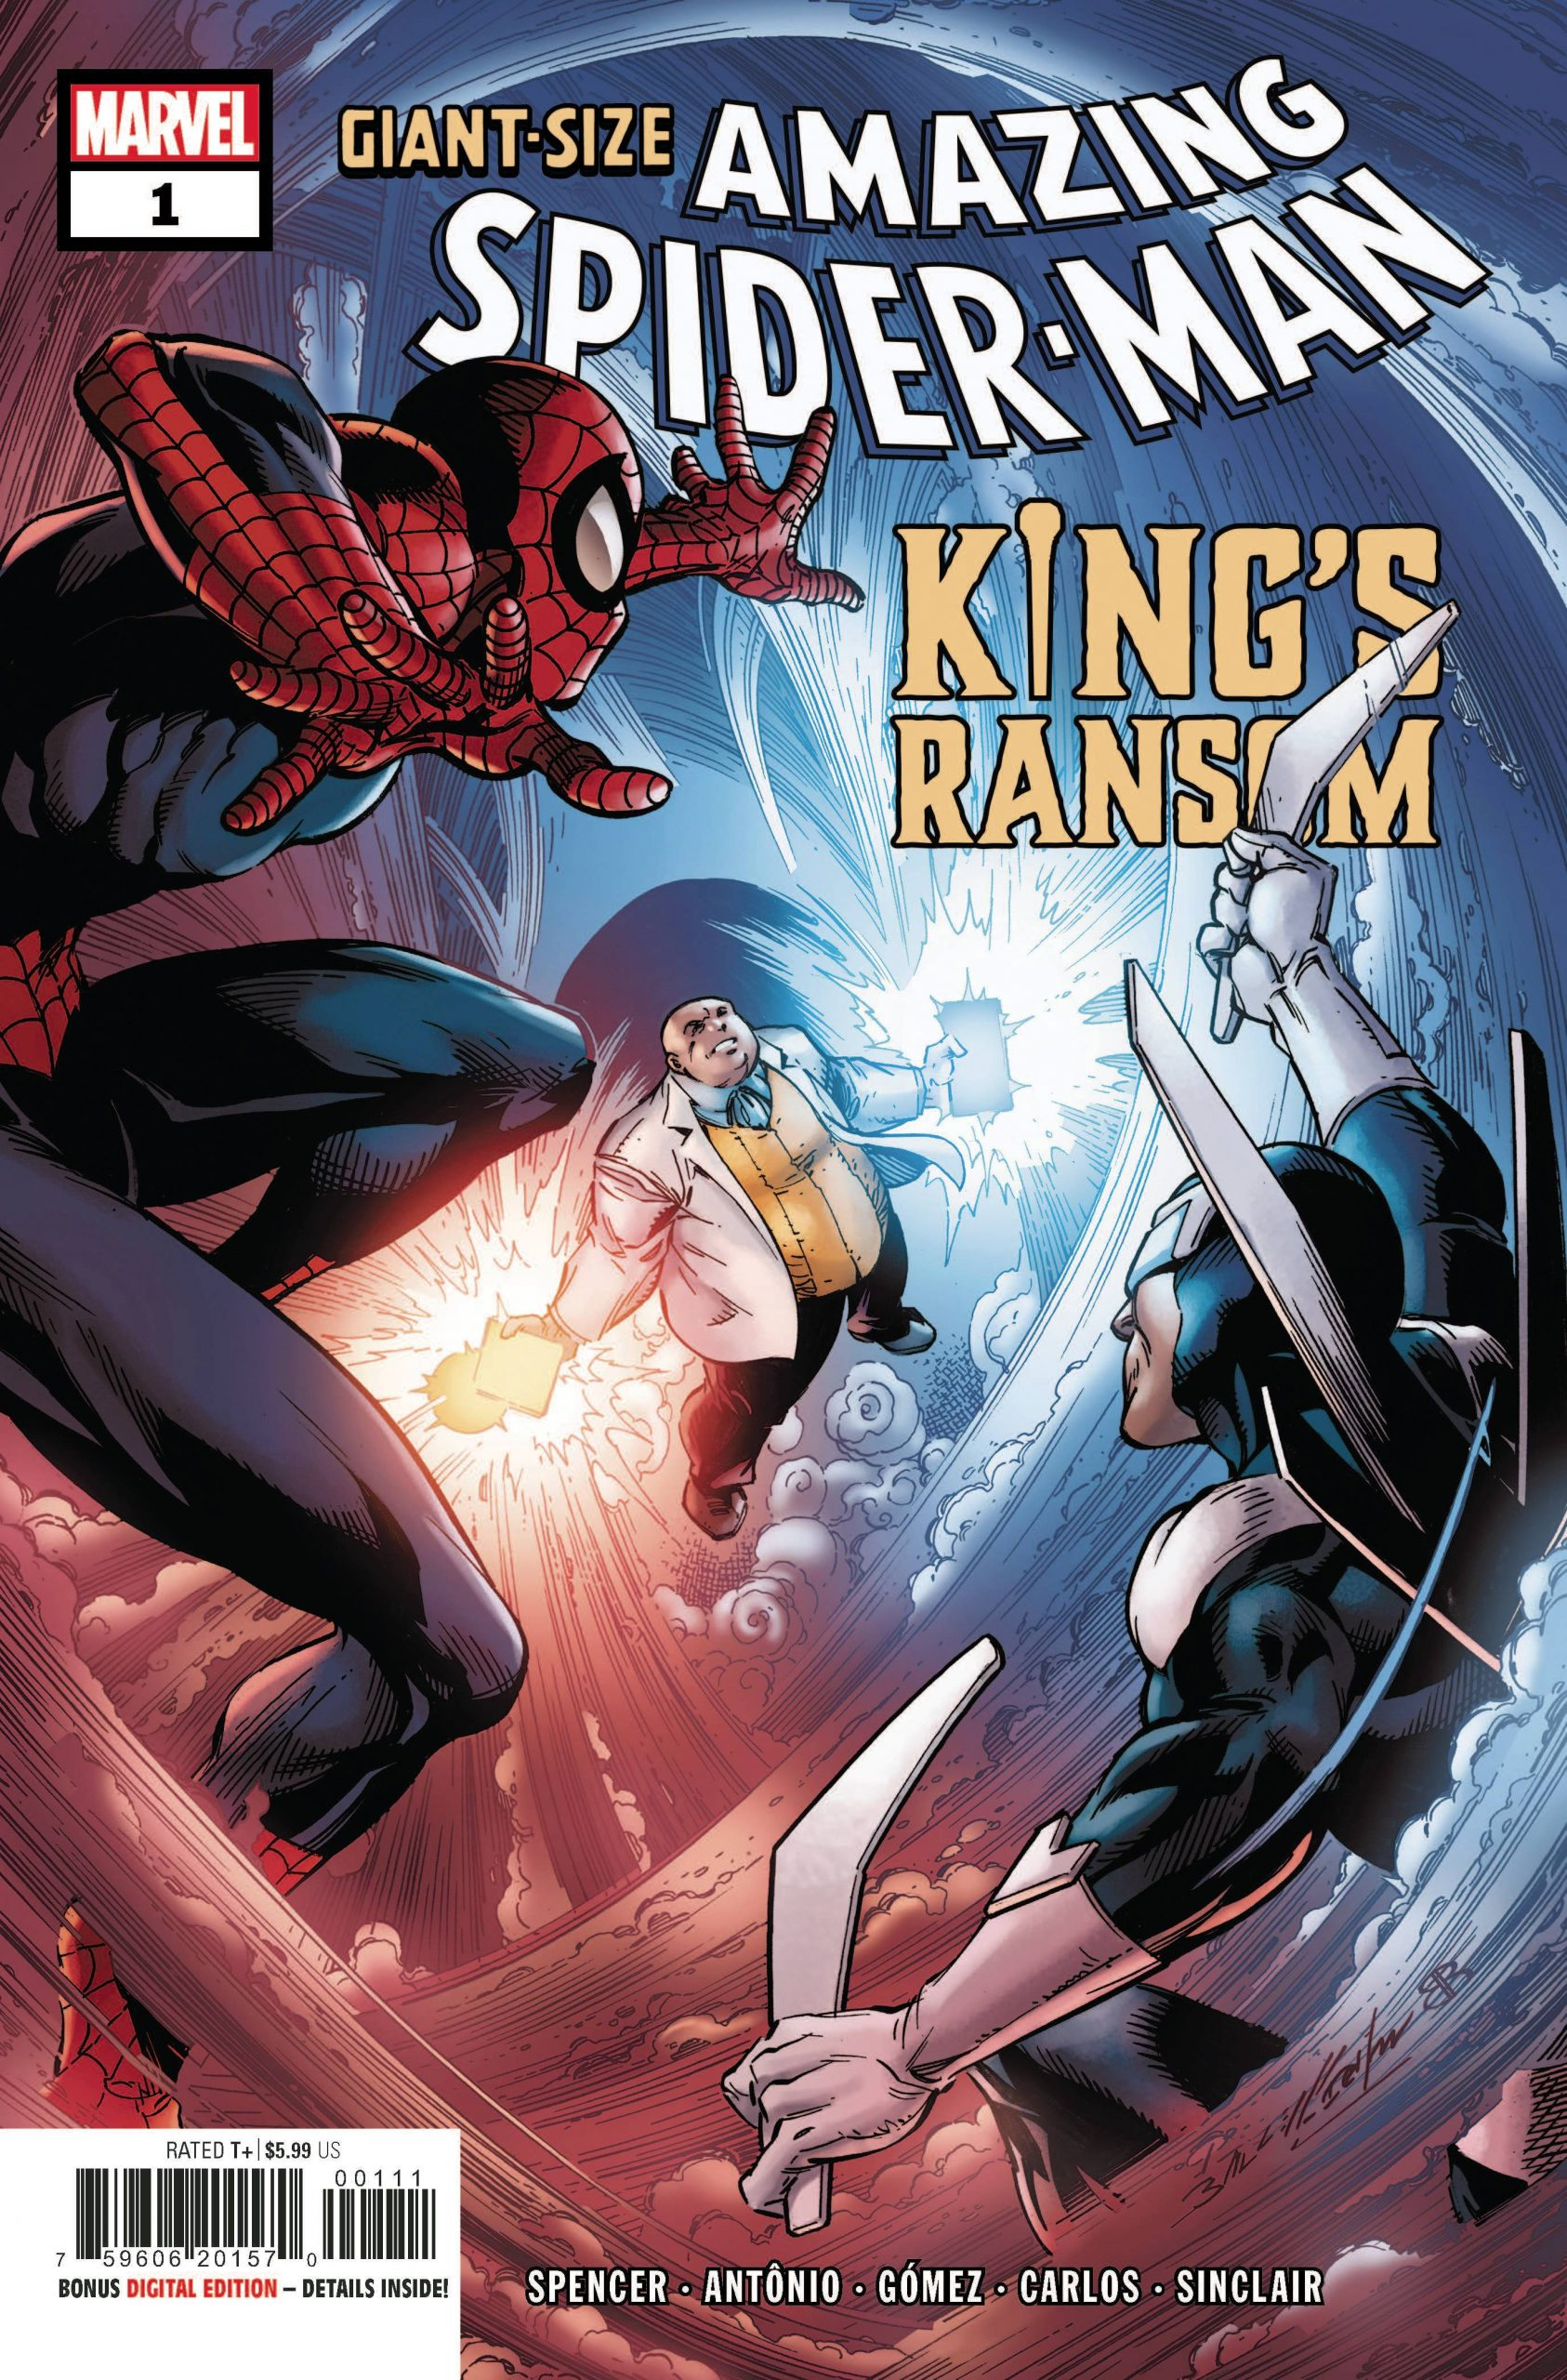 GIANT-SIZE-AMAZING-SPIDER-MAN-KINGS-RANSOM-1-spoilers-0-1-scaled-1 GIANT-SIZE-AMAZING-SPIDER-MAN-KINGS-RANSOM-1-spoilers-0-1-scaled-1